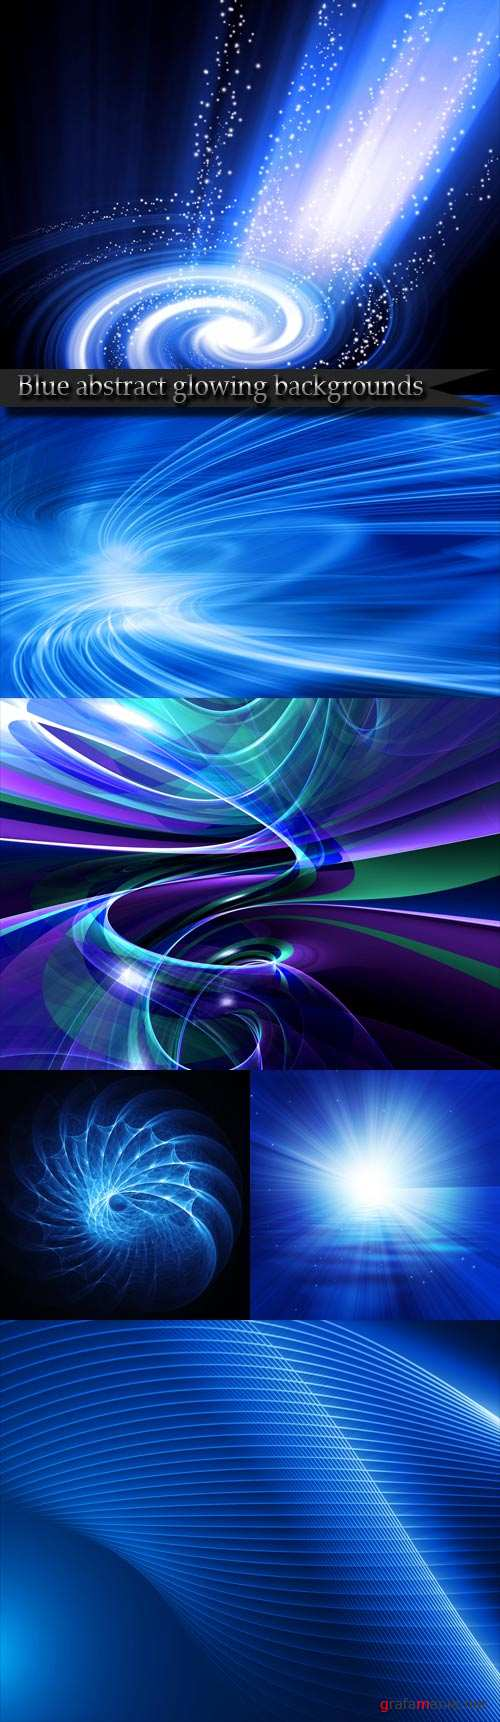 Blue abstract glowing backgrounds